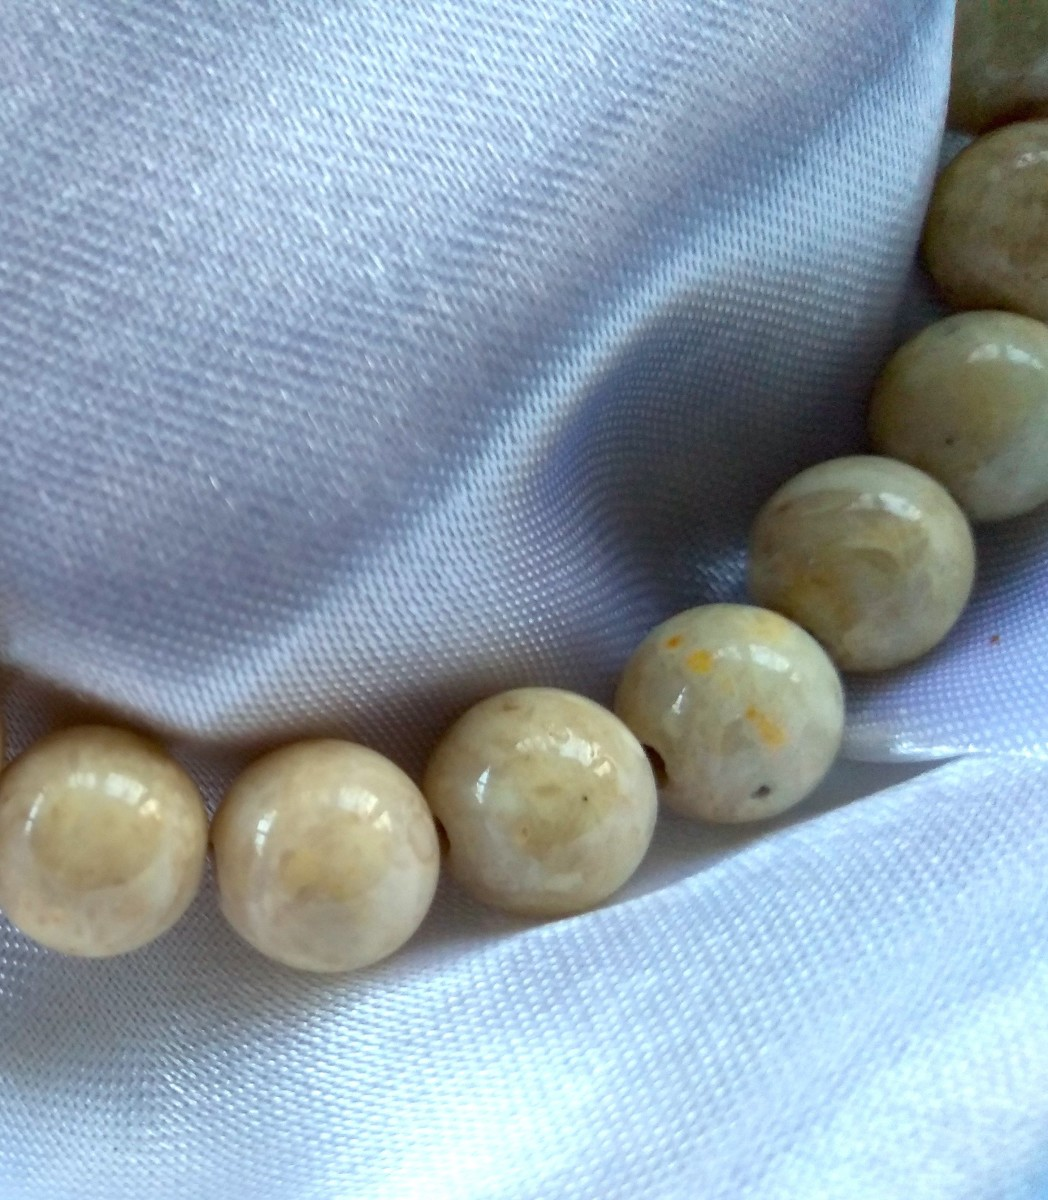 Riverstone, in polished beads. Excellent for self-care and prayer.